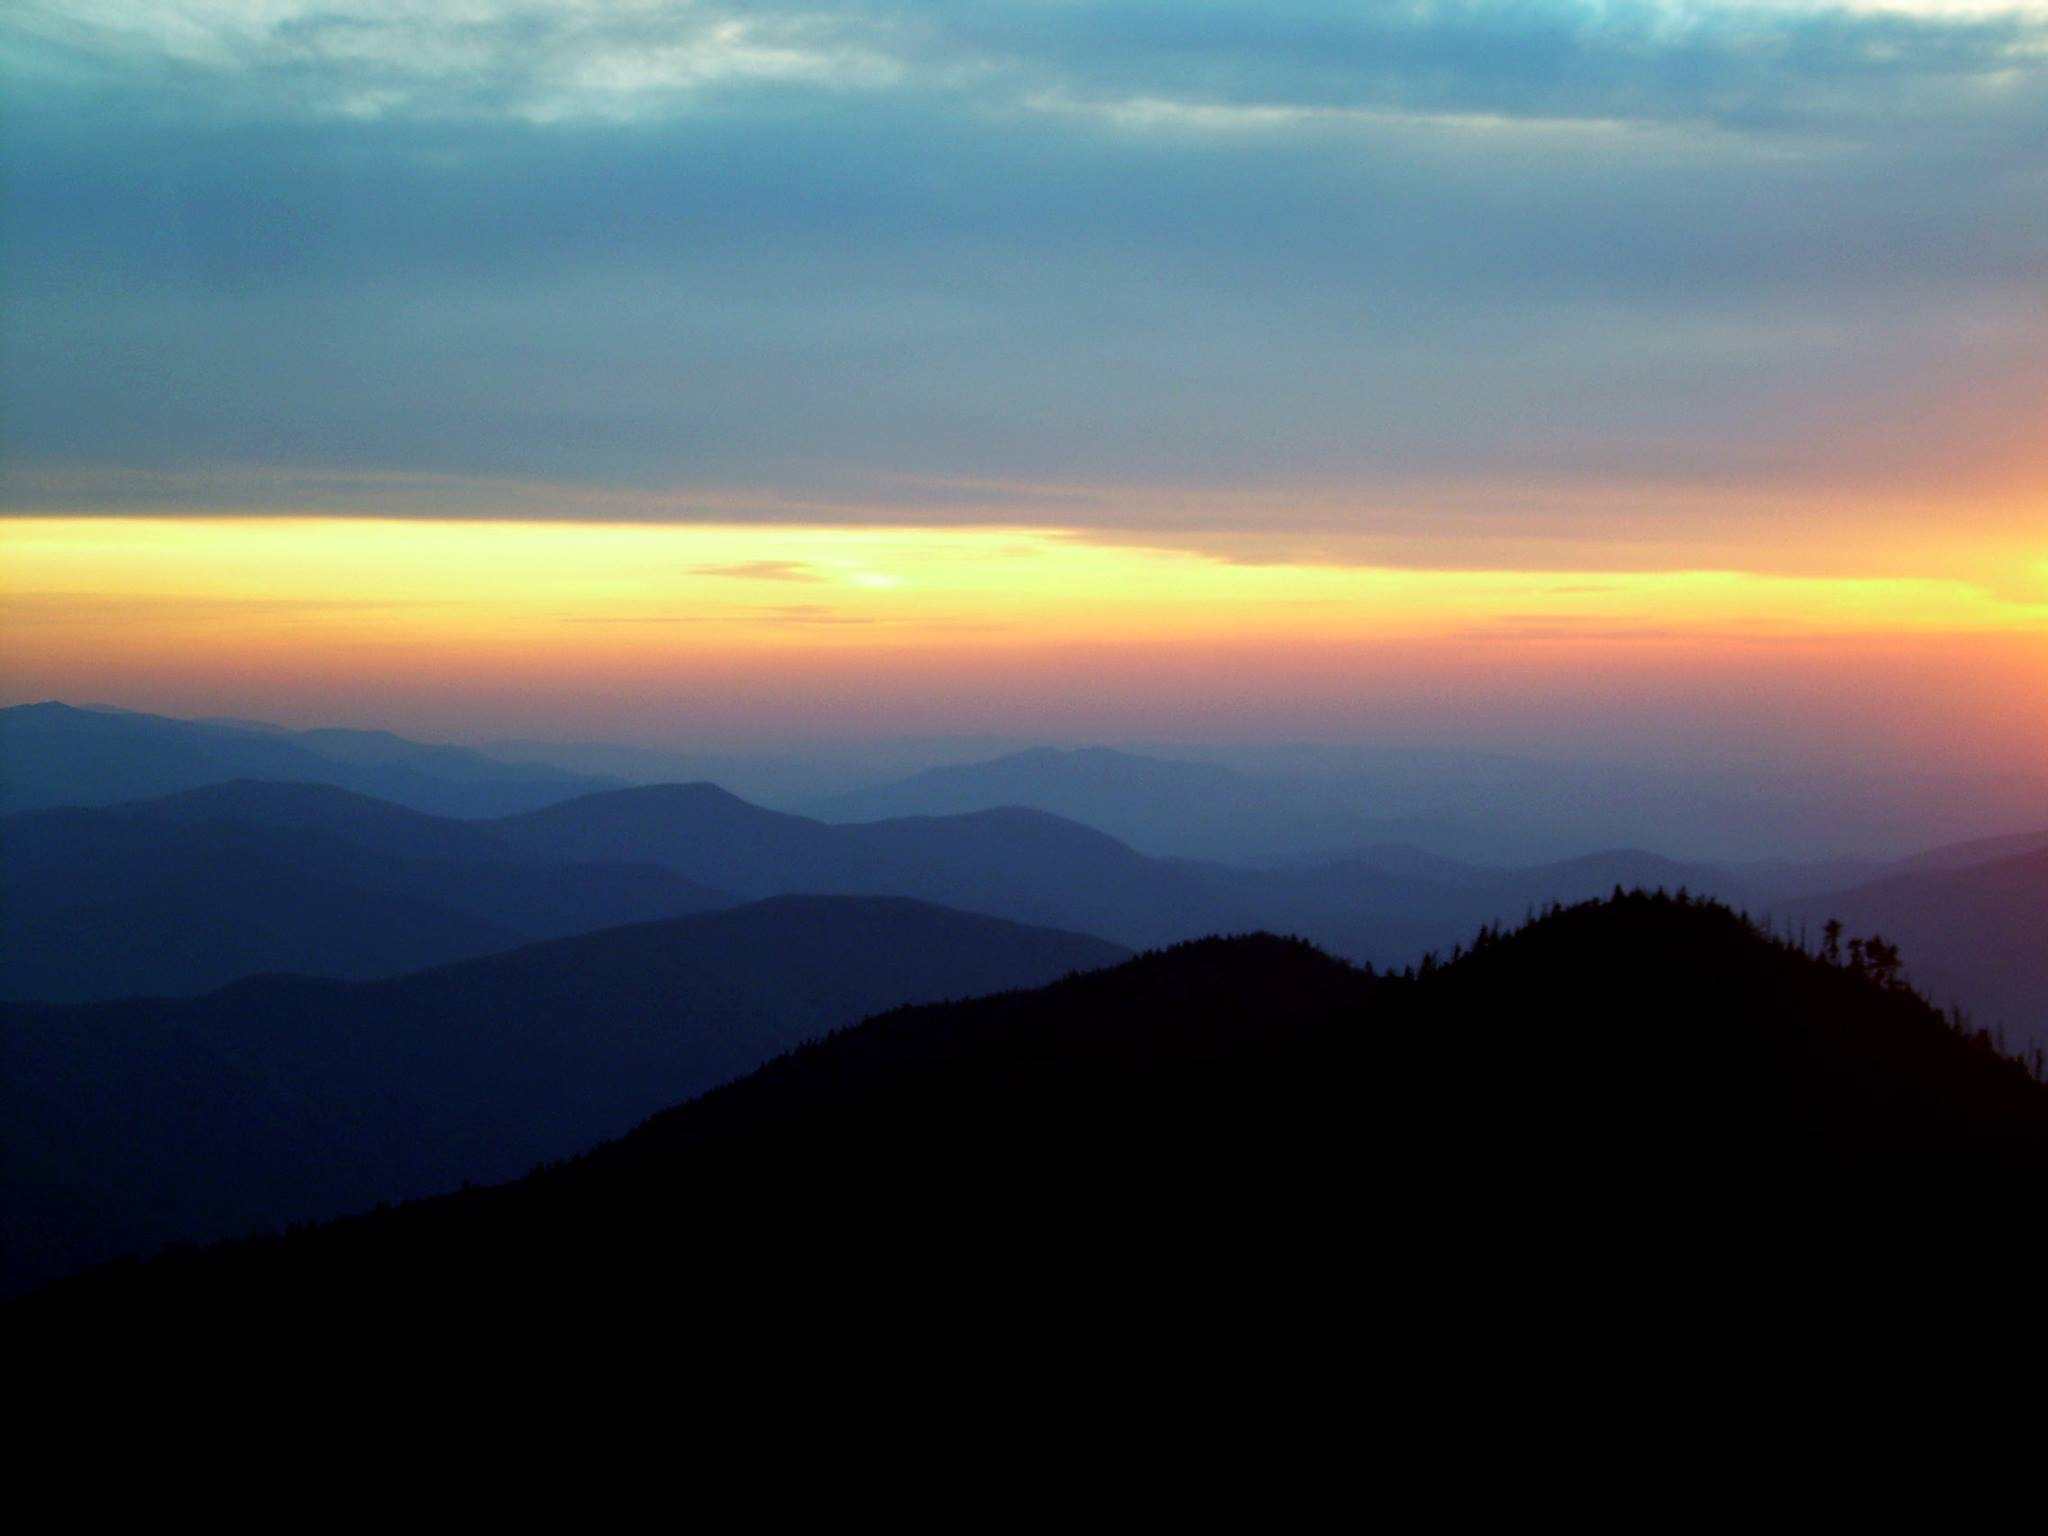 The blue haze that gently envelopes the Smoky Mountains and reminds me of how depression can unassumingly creep in.